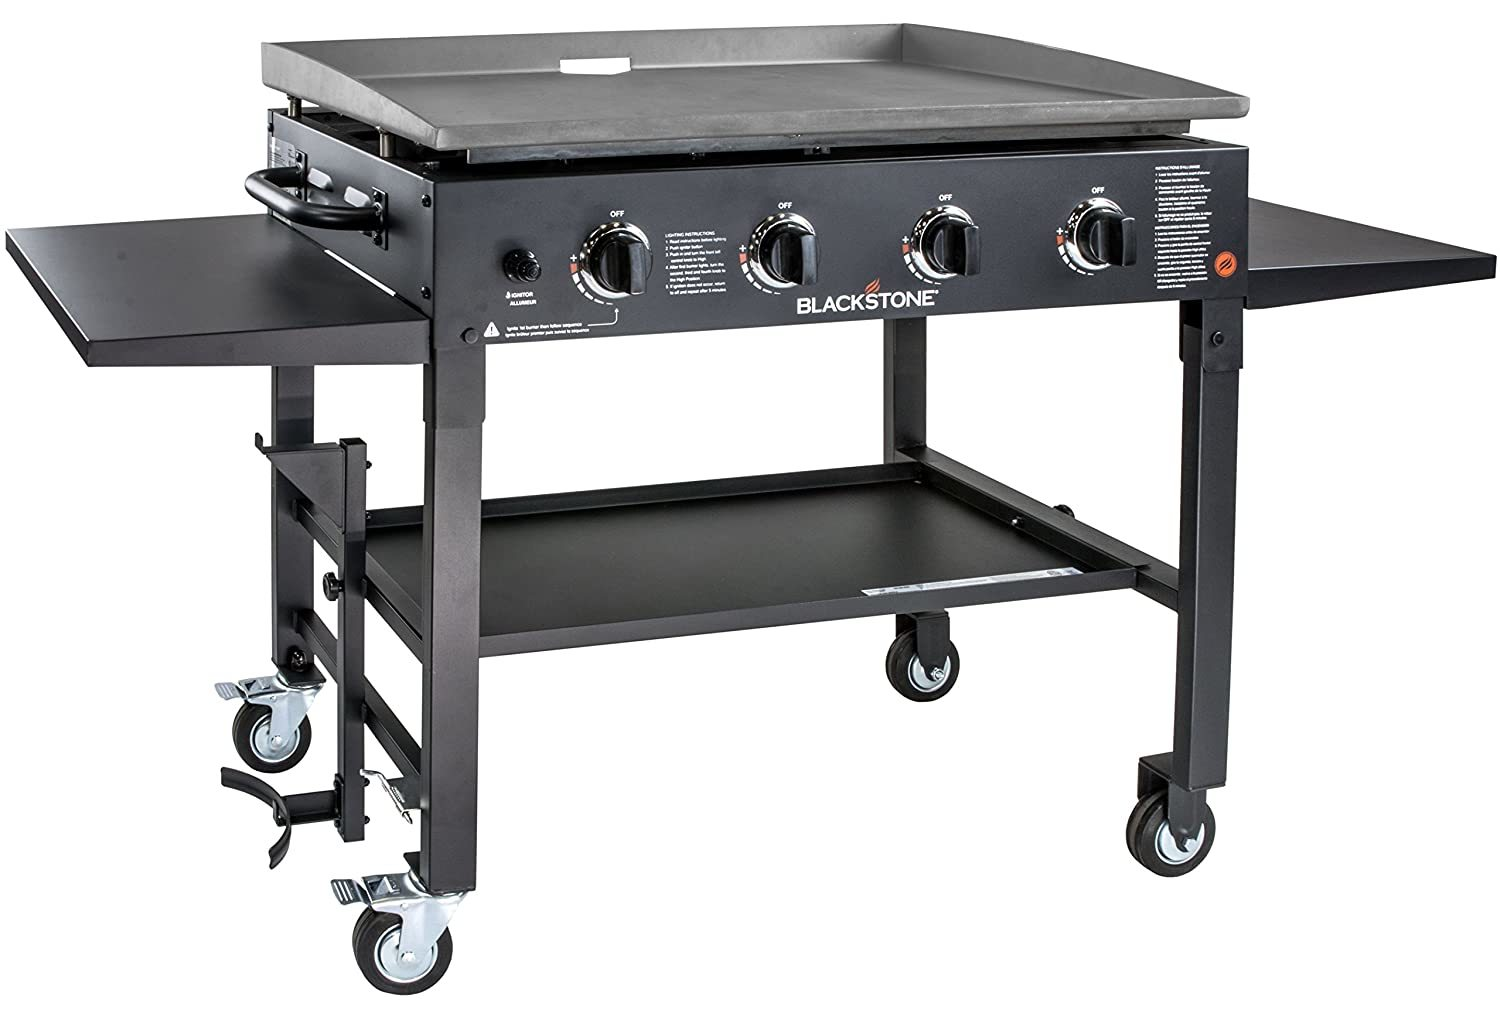 """2. Blackstone 36"""" Outdoor Flat Top Gas Grill Griddle Station"""